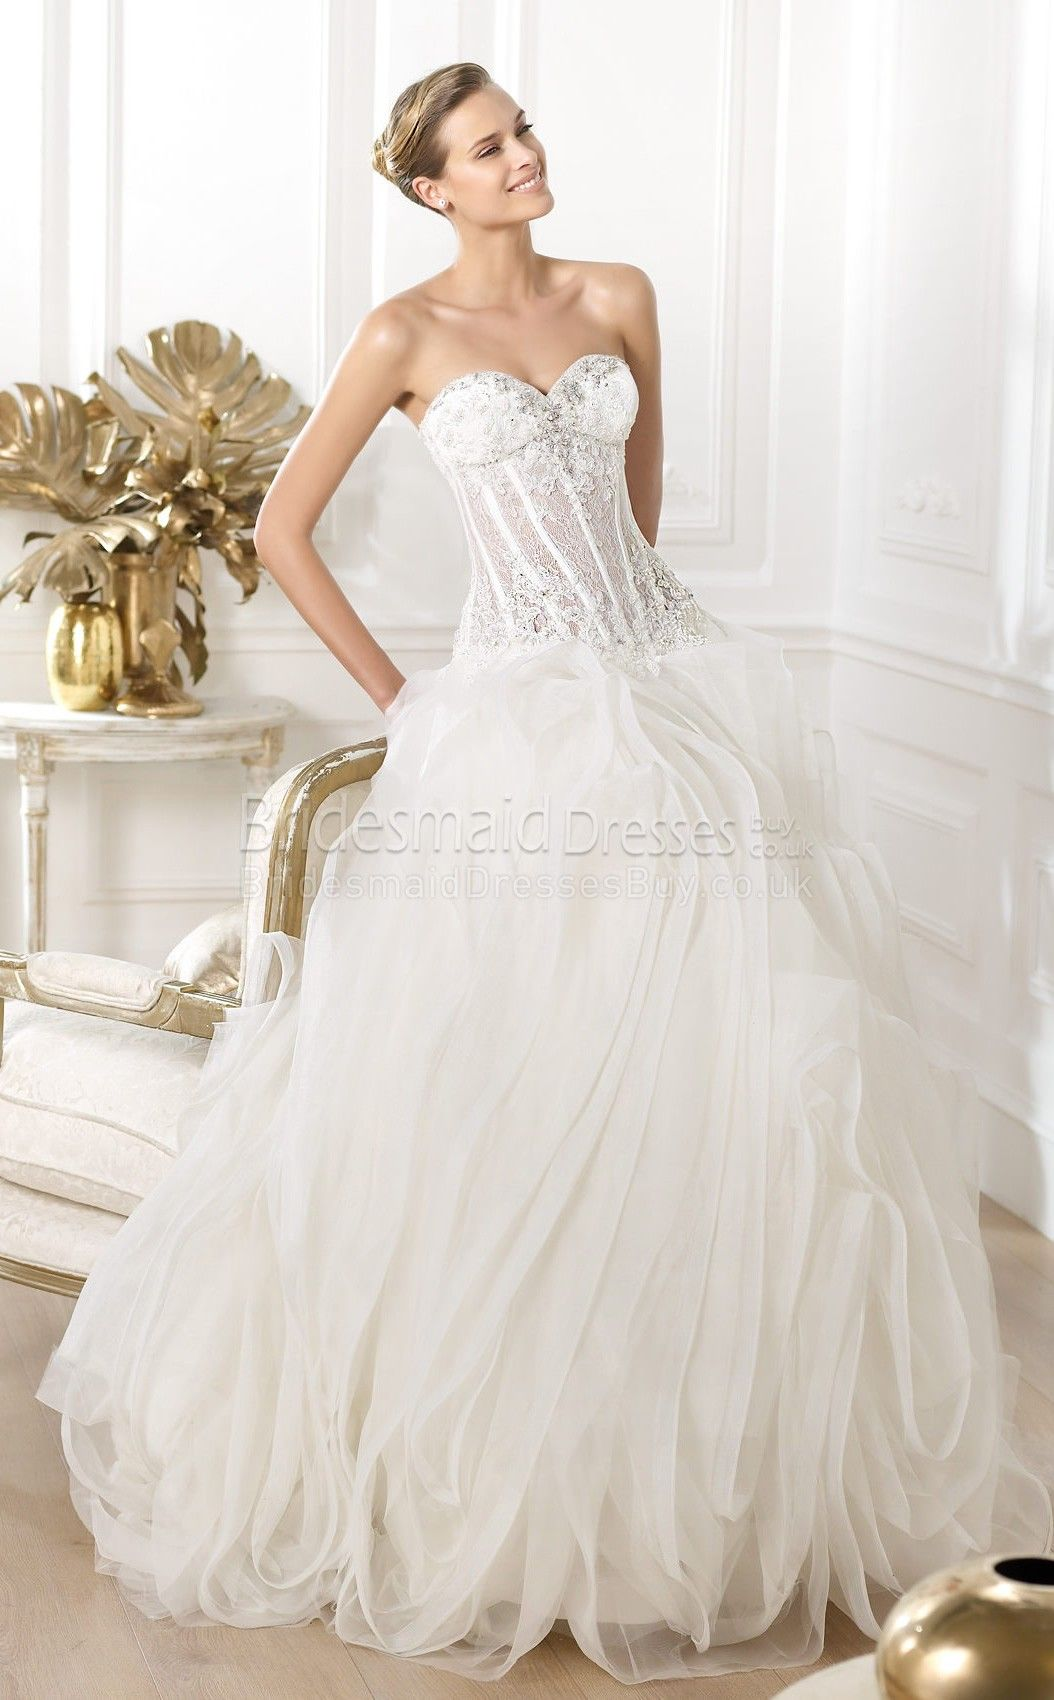 Luxurious sheathcolumn sweetheart sleeveless laceorganza floor